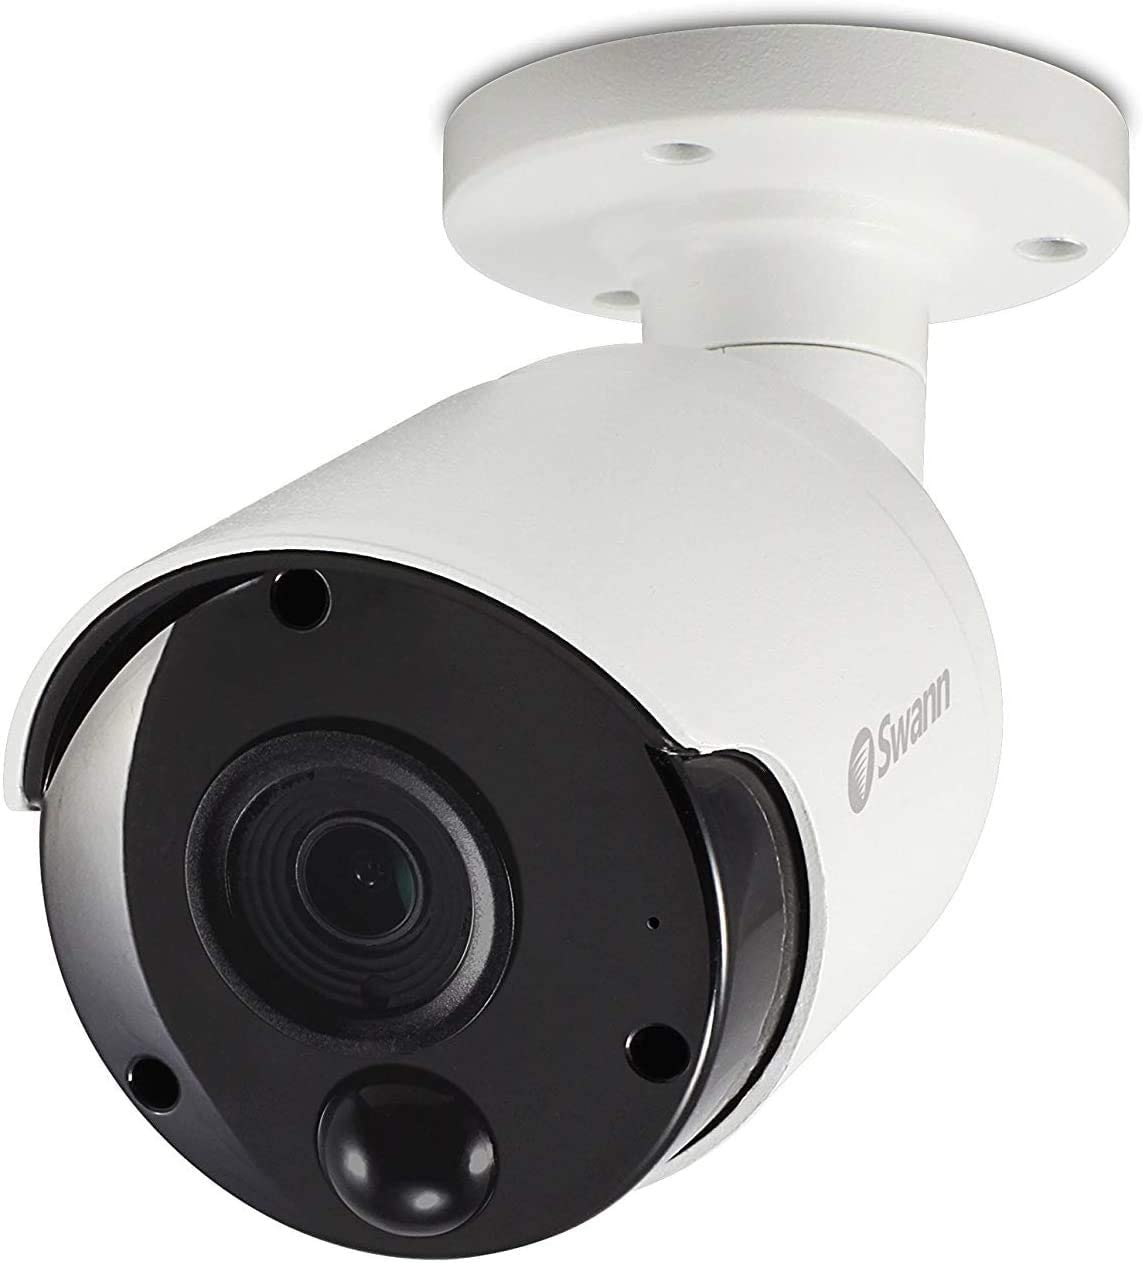 Swann Wired PIR Bullet Security Camera, 5MP Super HD Surveillance Cam with Infrared Night Vision, Thermal, Heat & Motion Sensing, Audio Capture, Add to NVR with PoE, SWNHD-865MSB